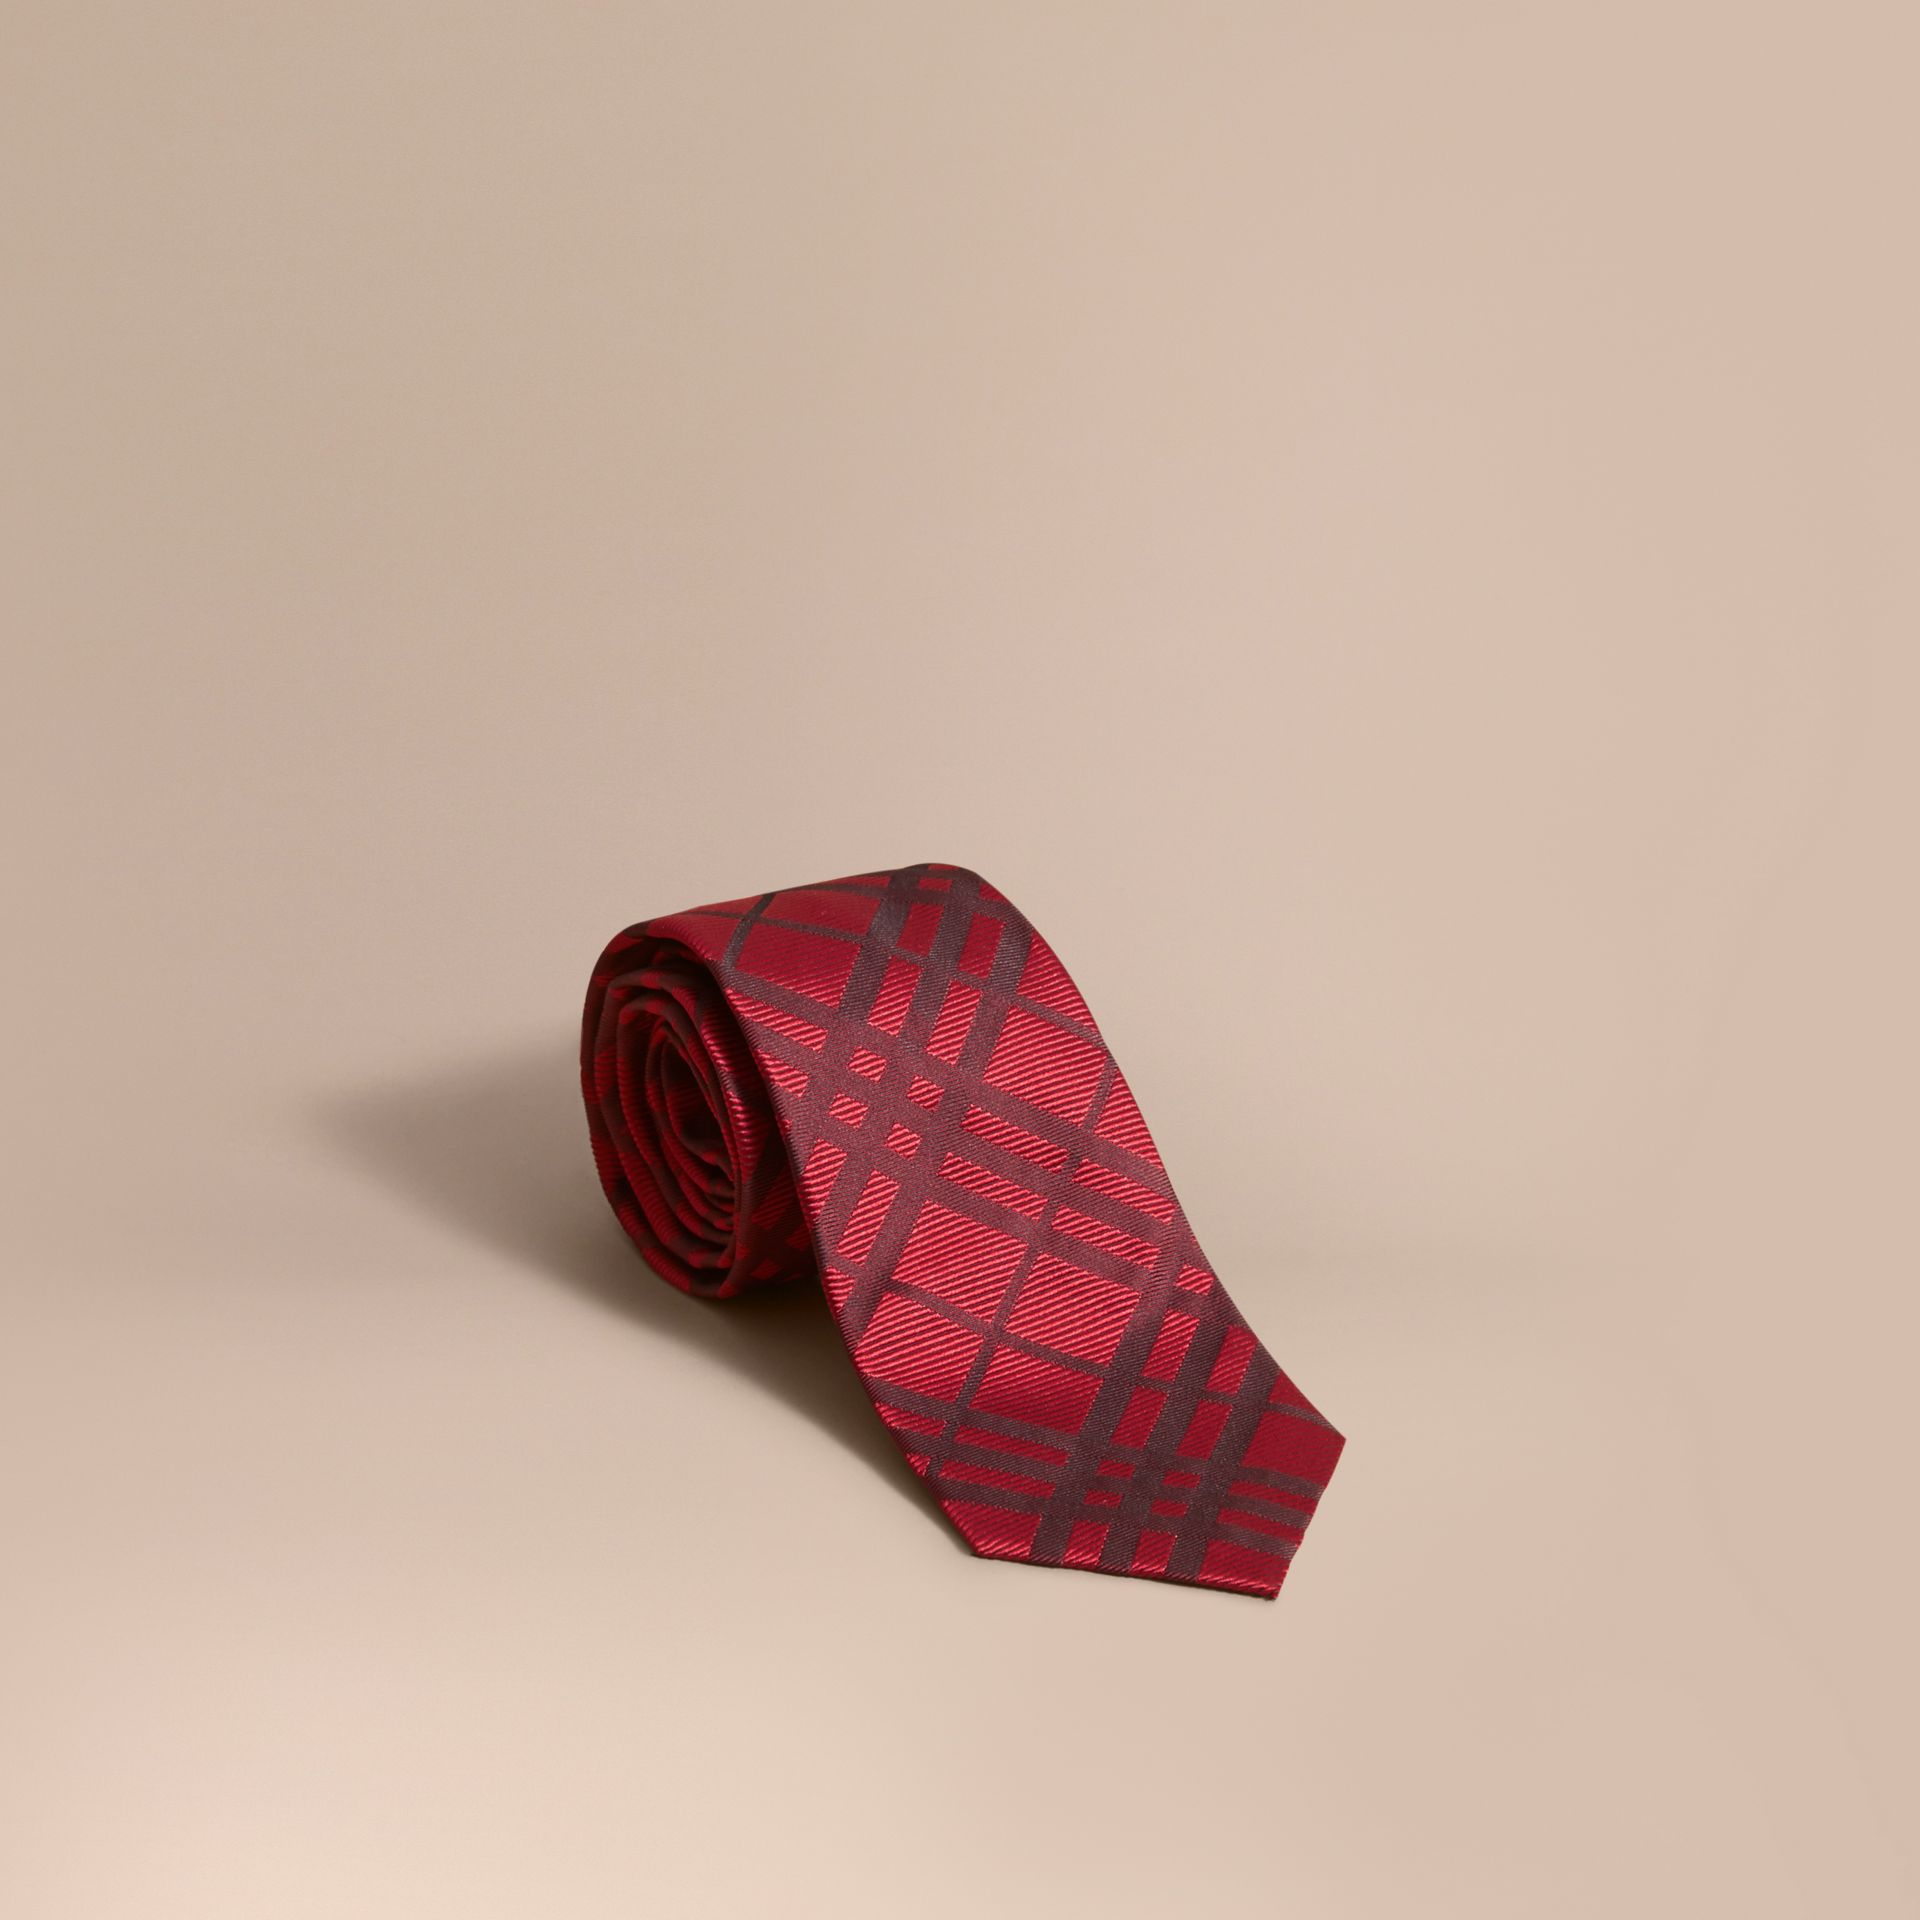 Modern Cut Check Silk Jacquard Tie in Parade Red - Men | Burberry - gallery image 1